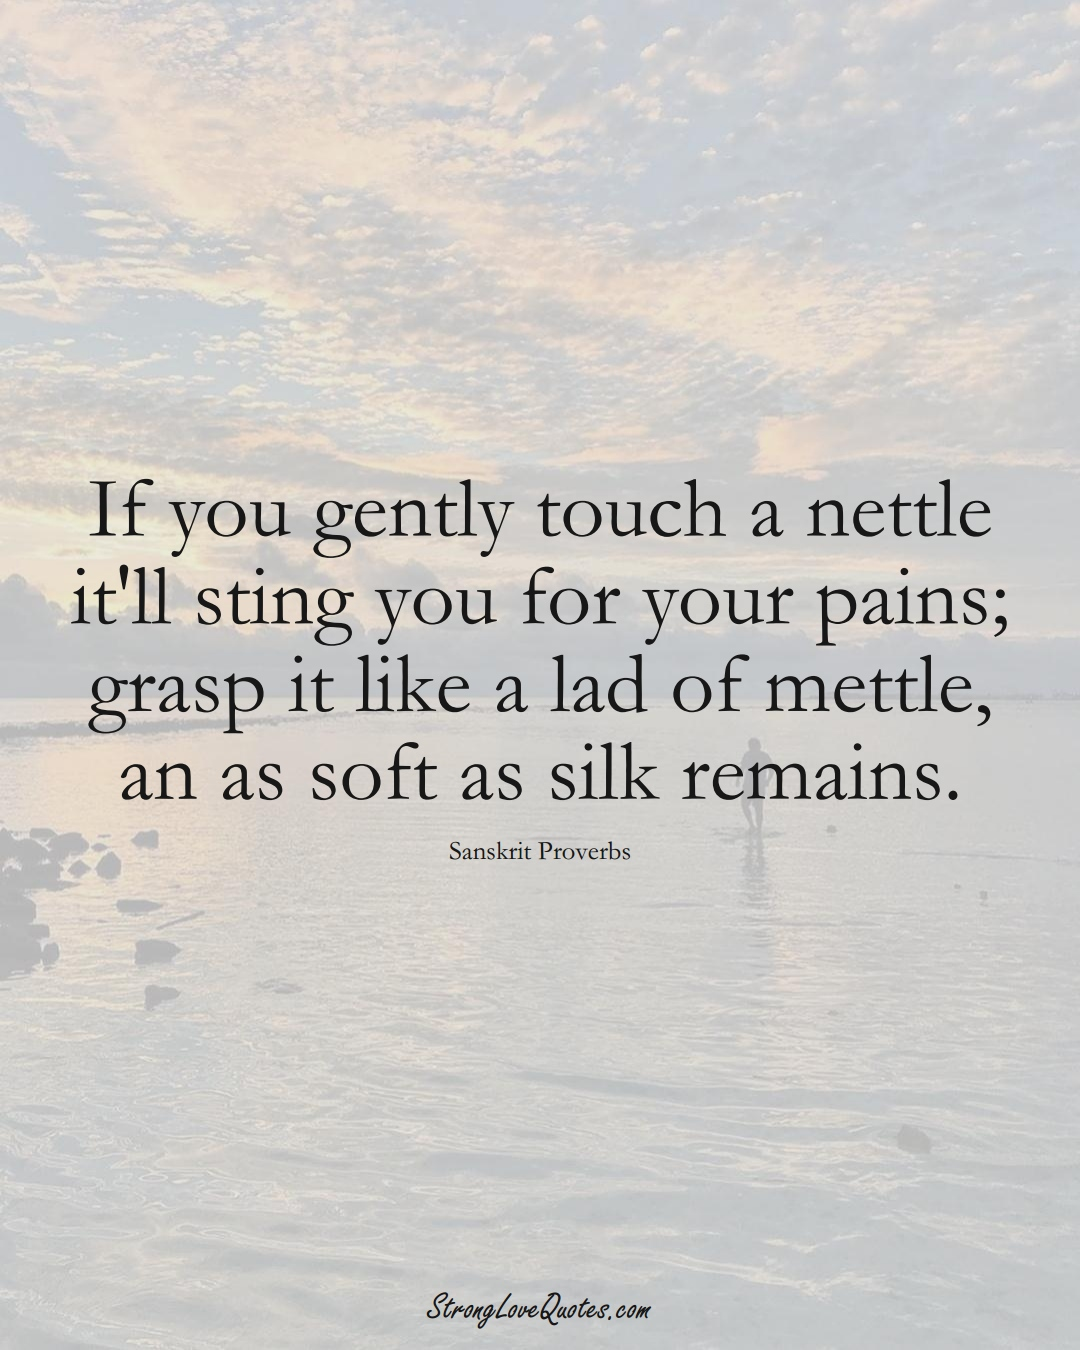 If you gently touch a nettle it'll sting you for your pains; grasp it like a lad of mettle, an as soft as silk remains. (Sanskrit Sayings);  #aVarietyofCulturesSayings